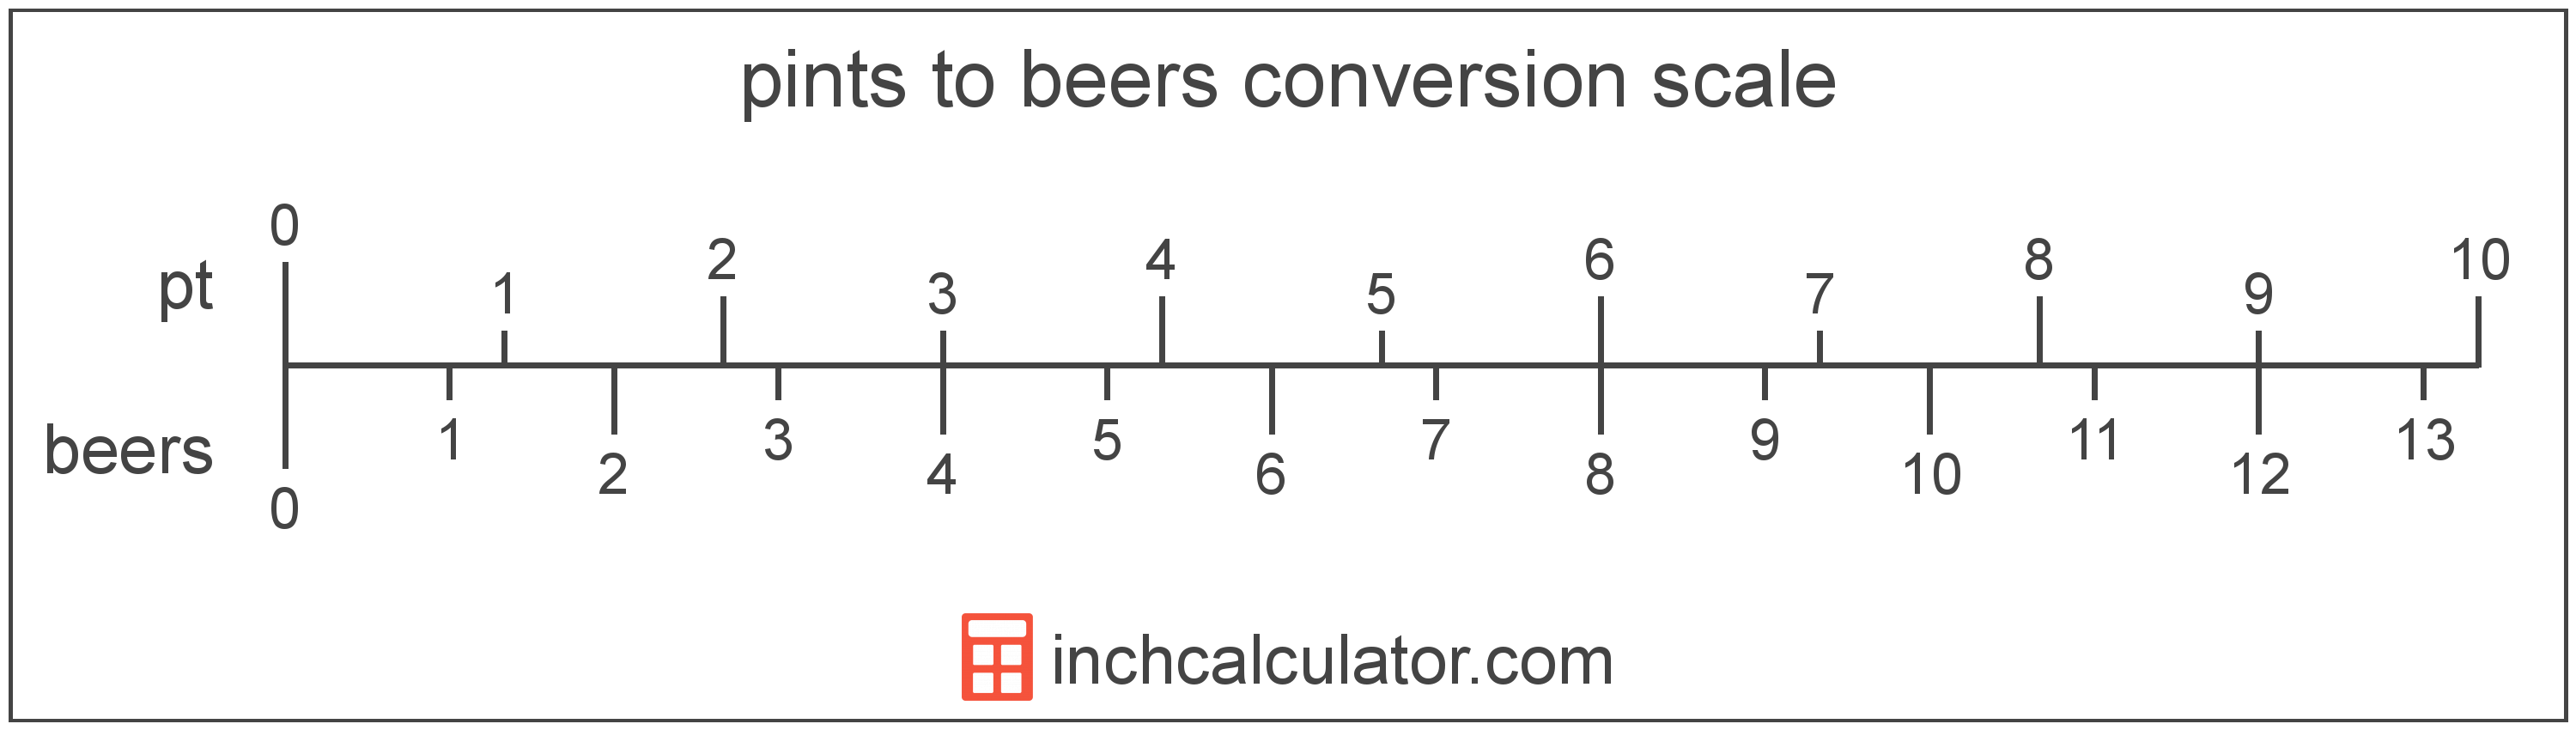 conversion scale showing pints and equivalent beers beer volume values